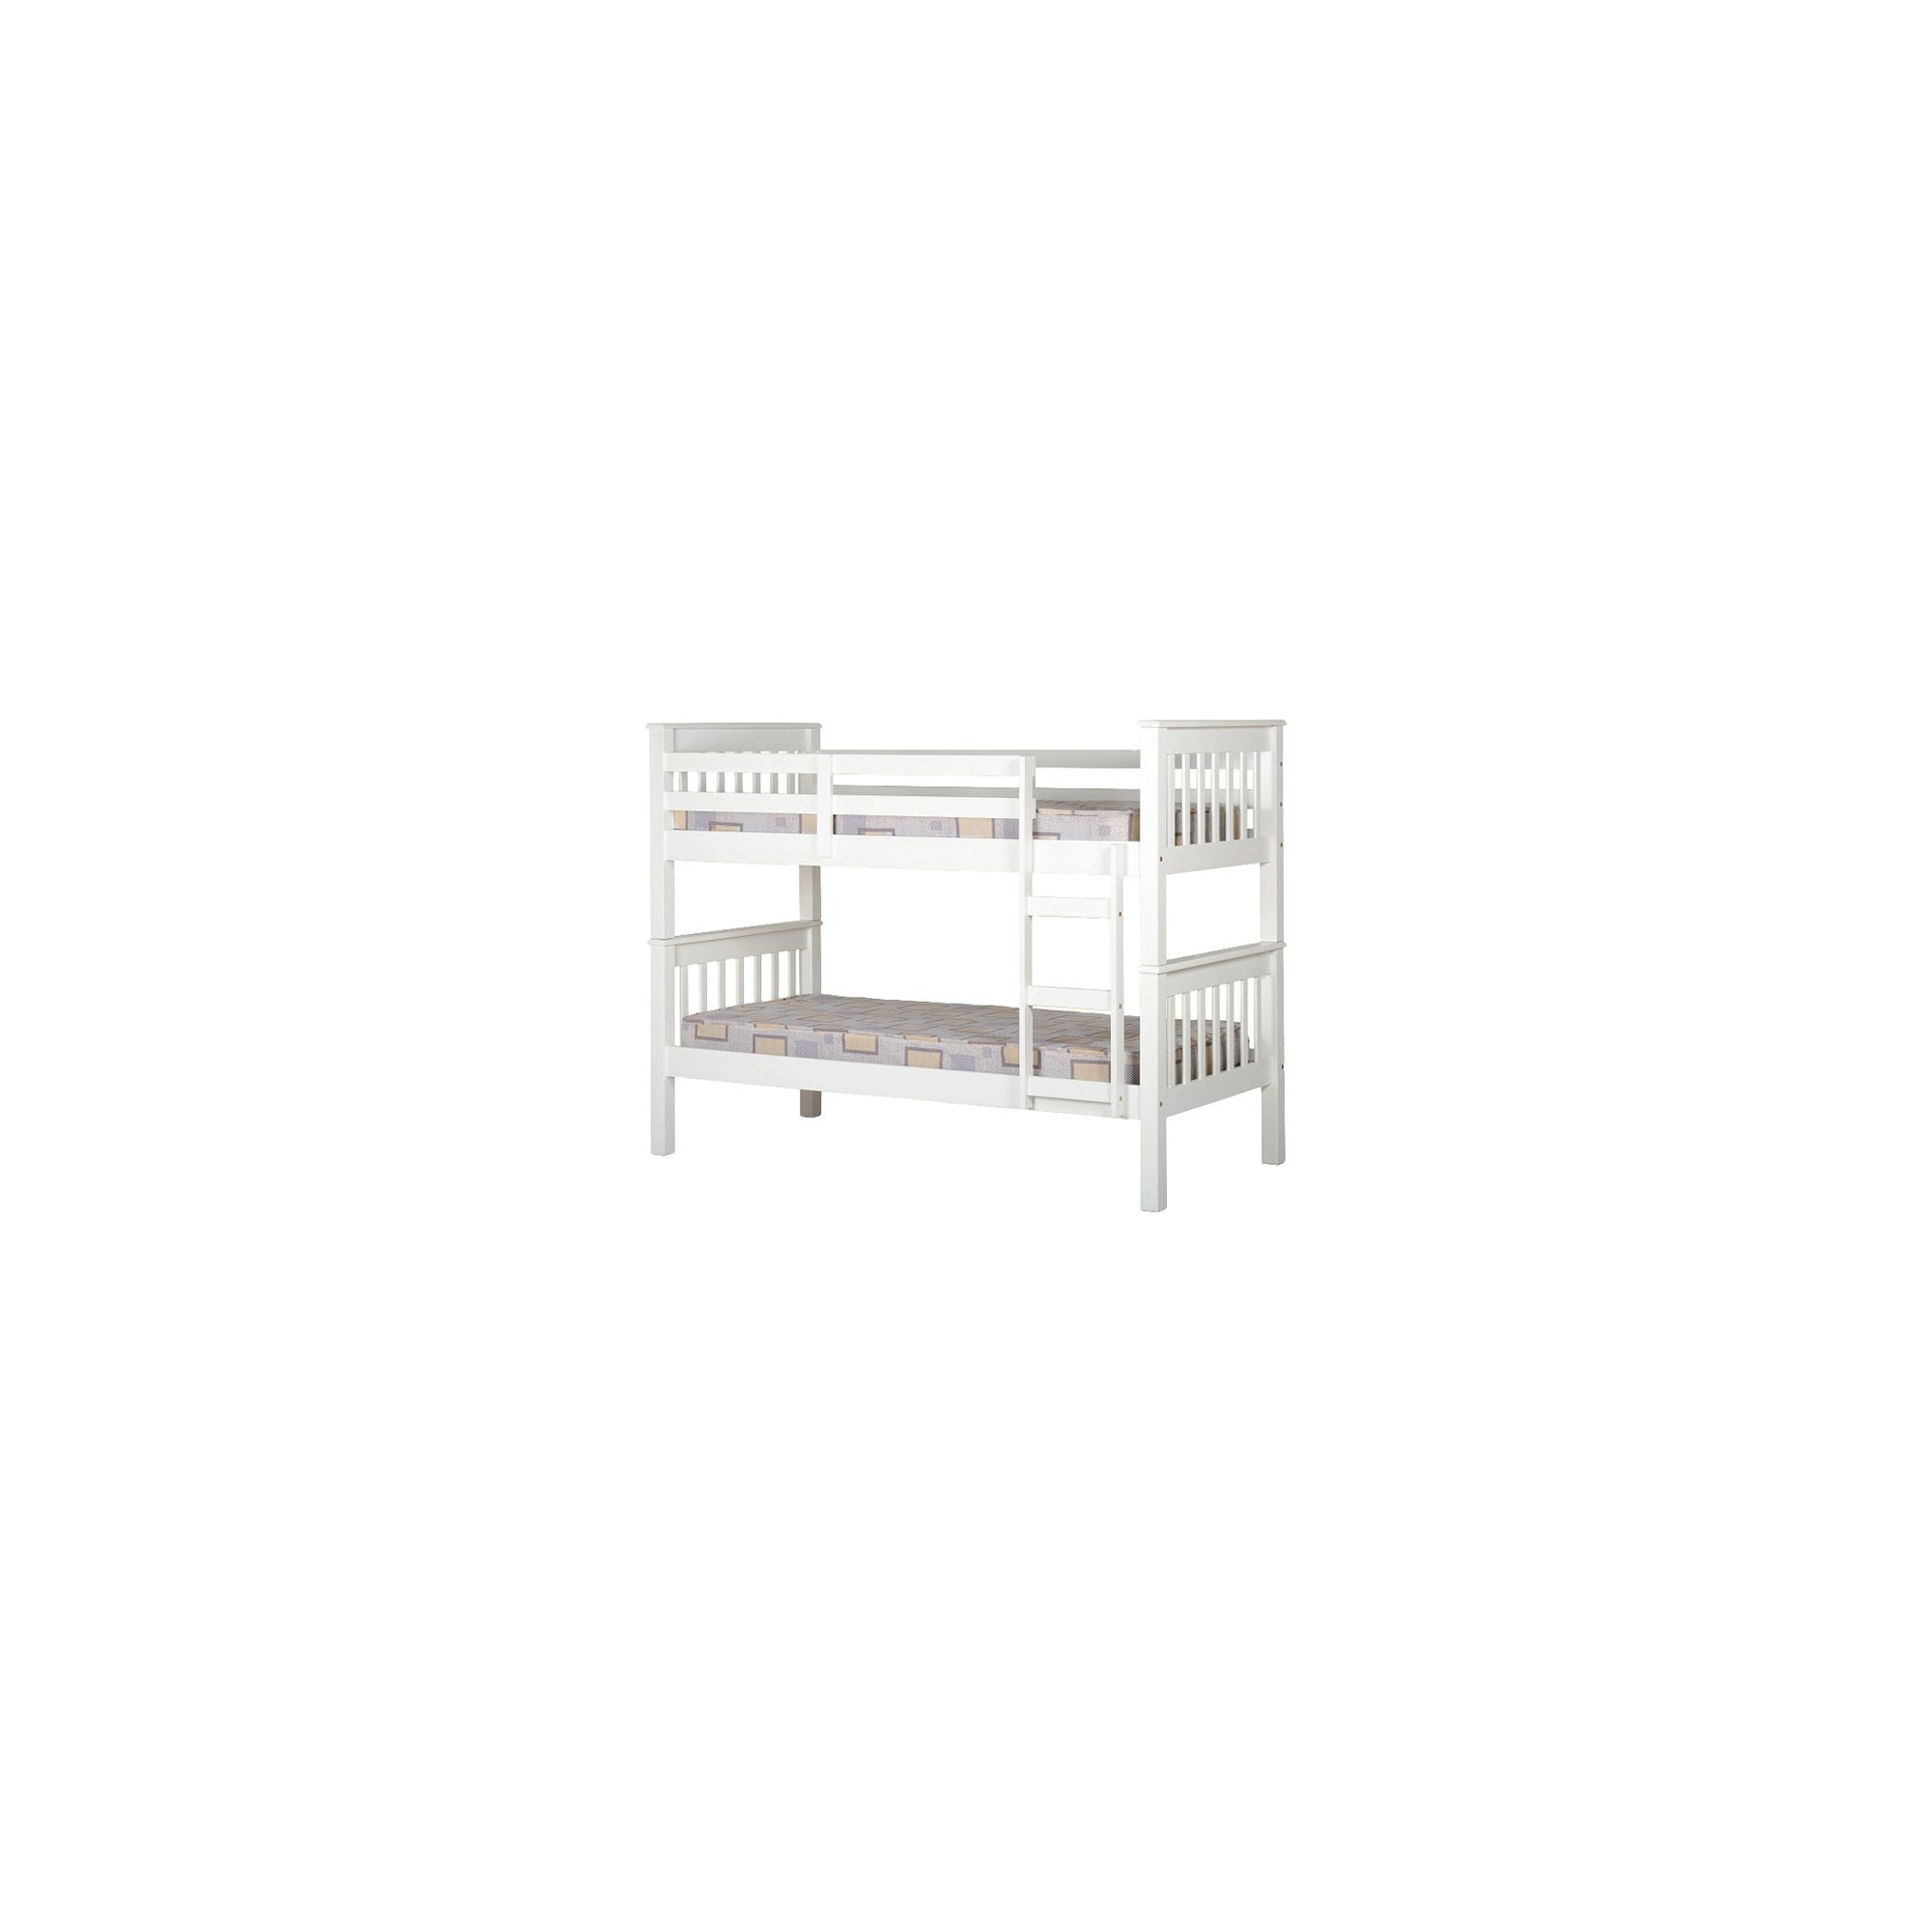 Home Essence Neptune Bunk Bed at Tesco Direct